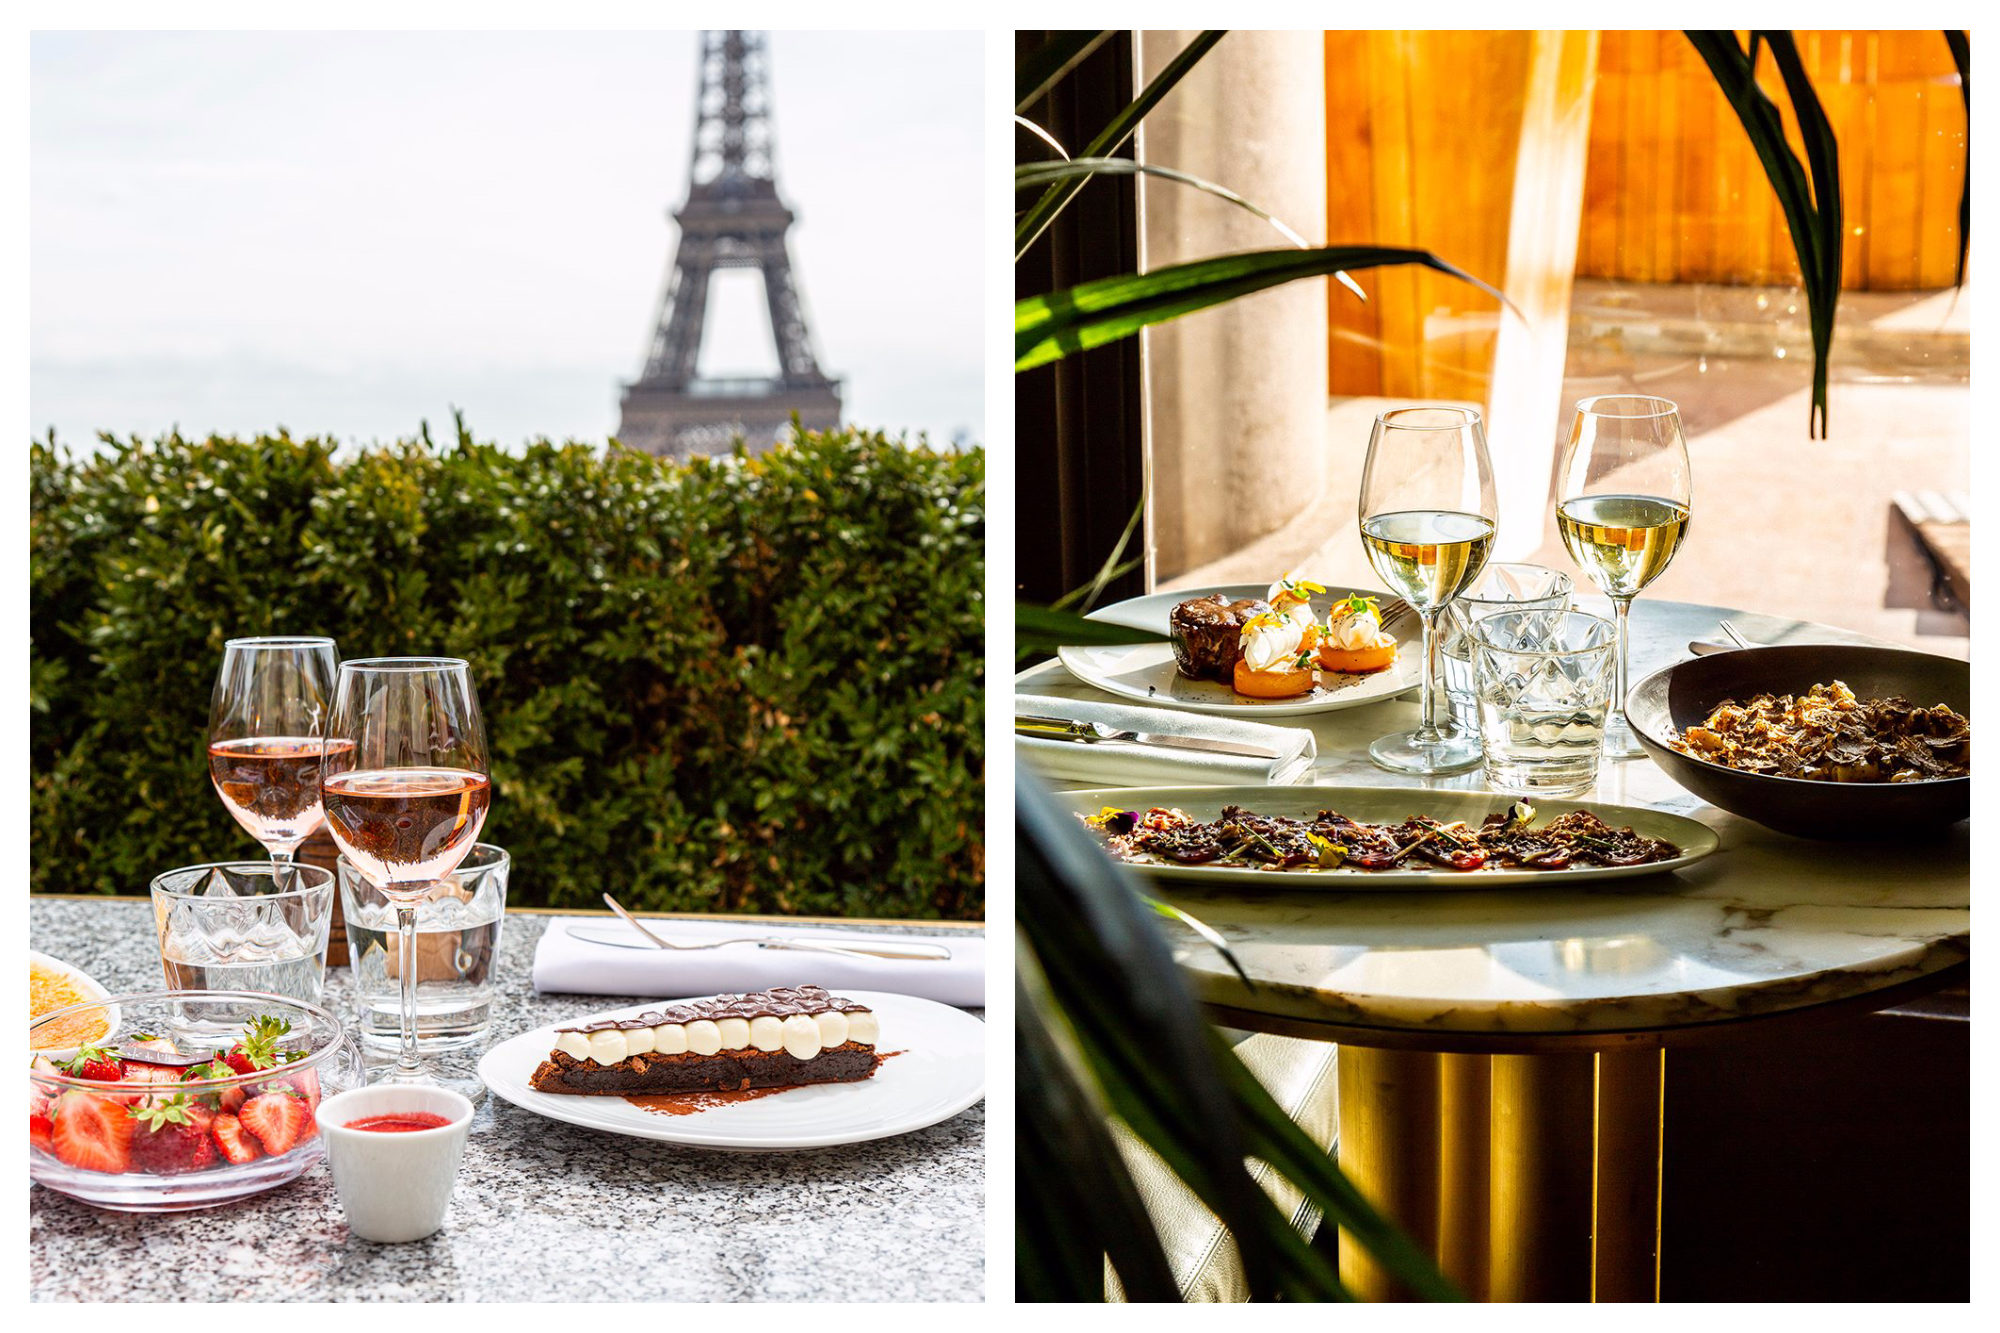 An outdoor table with desserts and rosé with an Eiffel Tower backdrop (left) and a table inside with signature dishes of carpaccio and truffle pasta (right) at the Café de L'Homme in Paris.